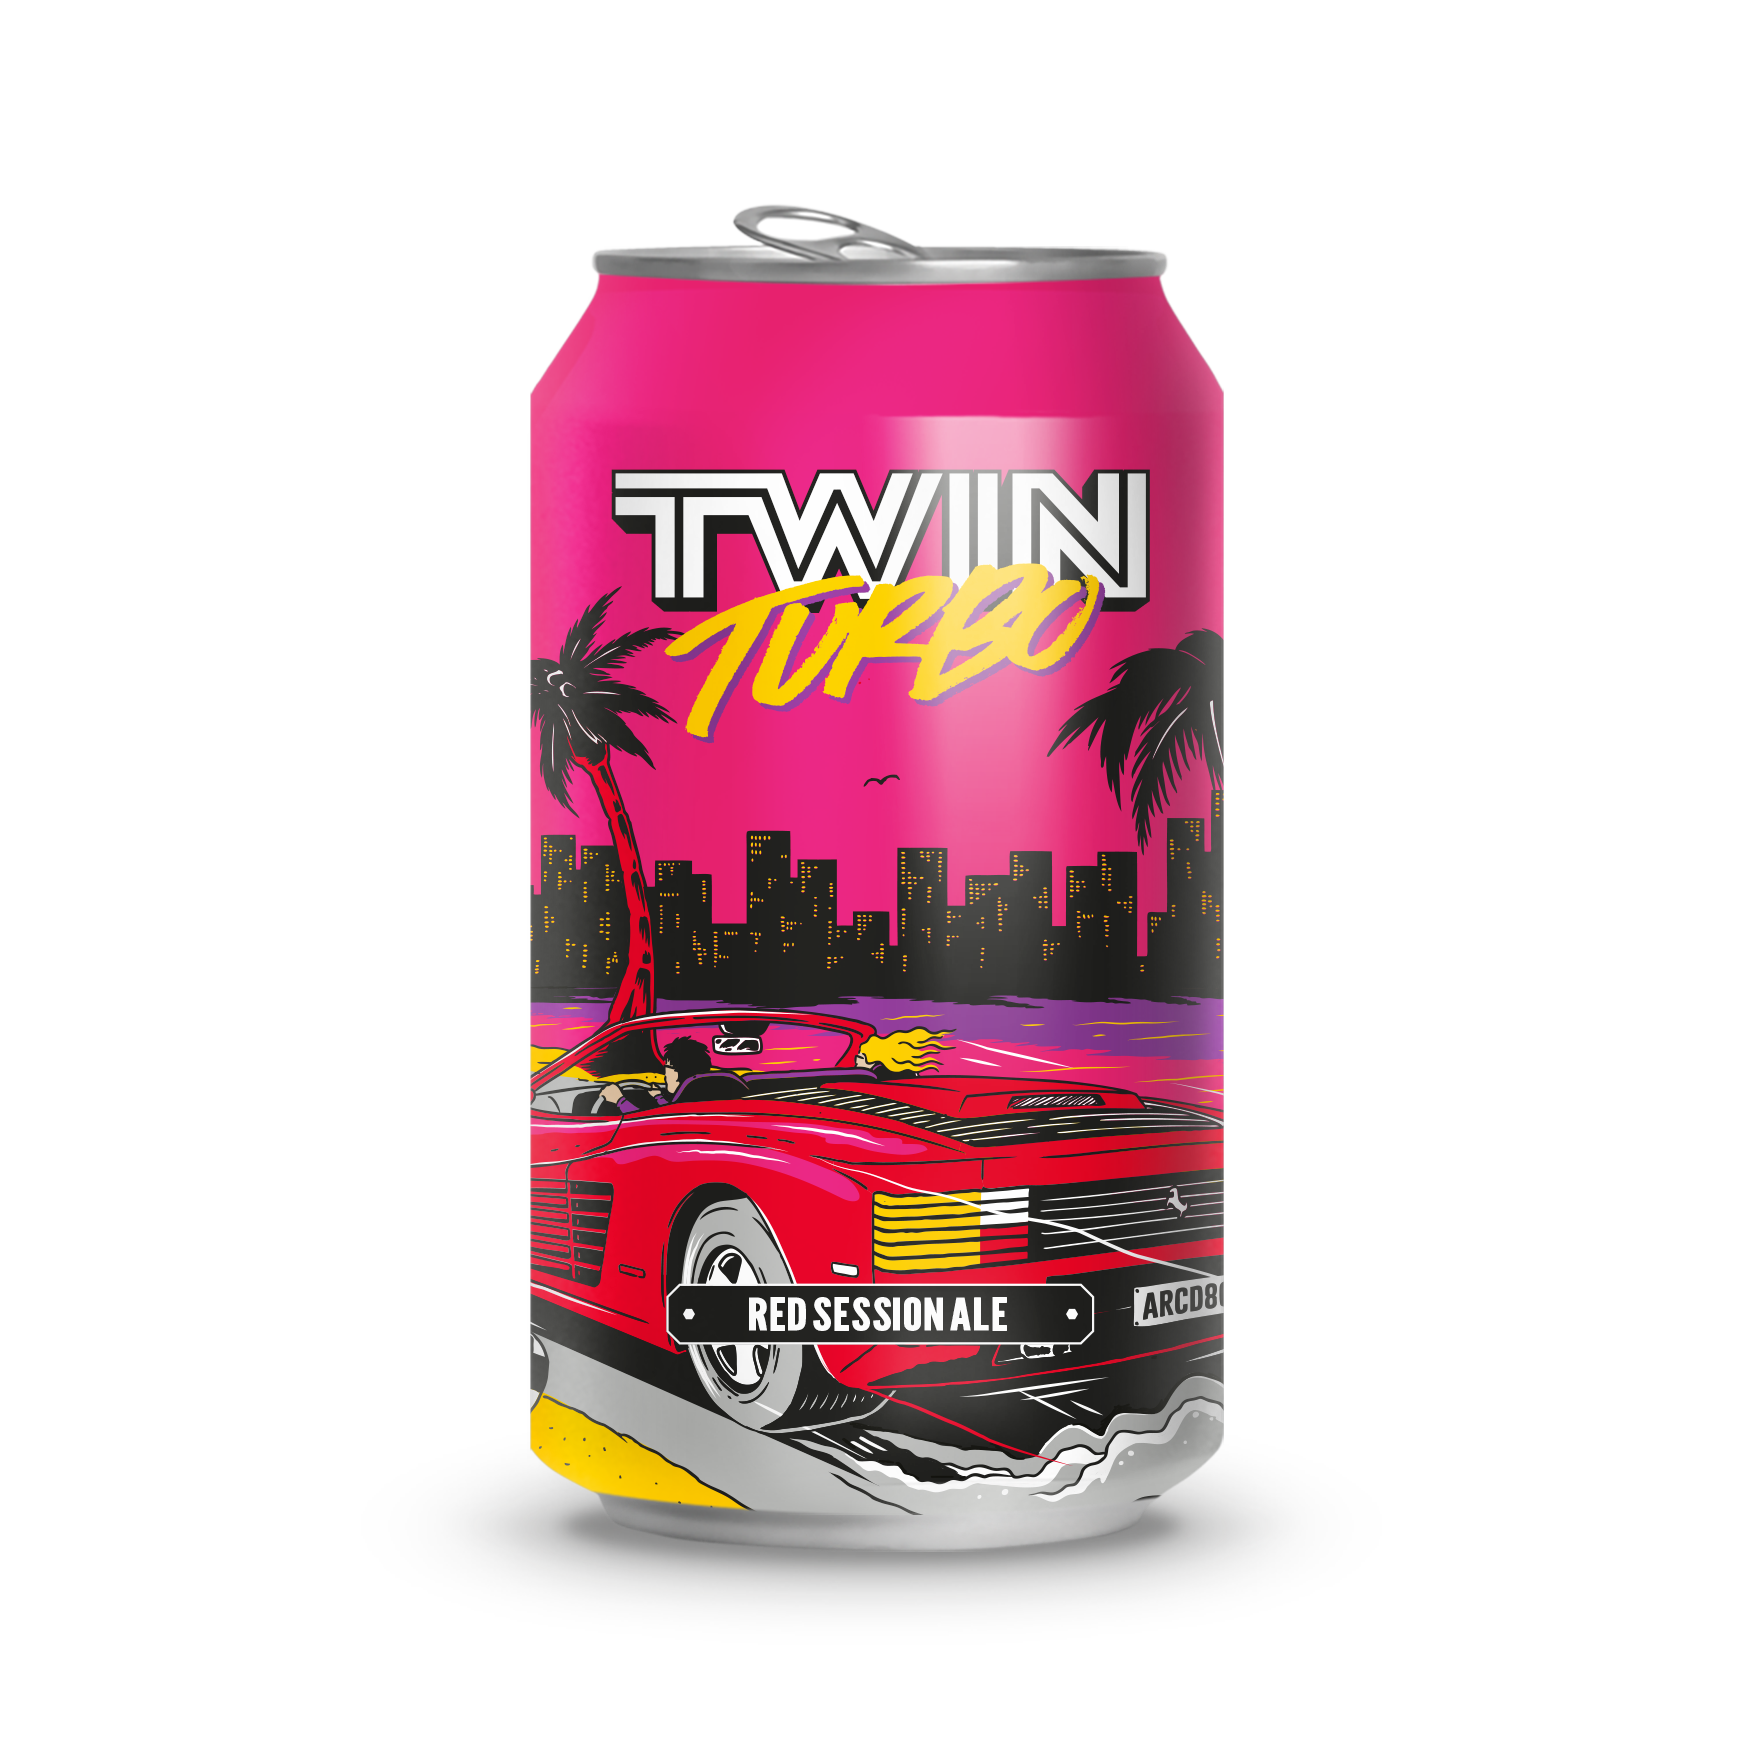 TWIN TURBORED SESSION ALE - A modern day twist of a vintage red ale. This session ale boasts big flavours of sweet caramel, laden with earthy, fruity, notes of hoppy marmalade.Twin Turbo Session Ale got its head-start from Outrun, everyone's favourite video-game of the 80's!The best part is we deliver to your door with the help of our friends, 10 Devonshire Place.Ingredients:Water, Barley, Hops, Yeast.Allergen warnings are in bold.Hops: Amarillo and Chinook 4.1% ABV / 1.5 UK UNITS